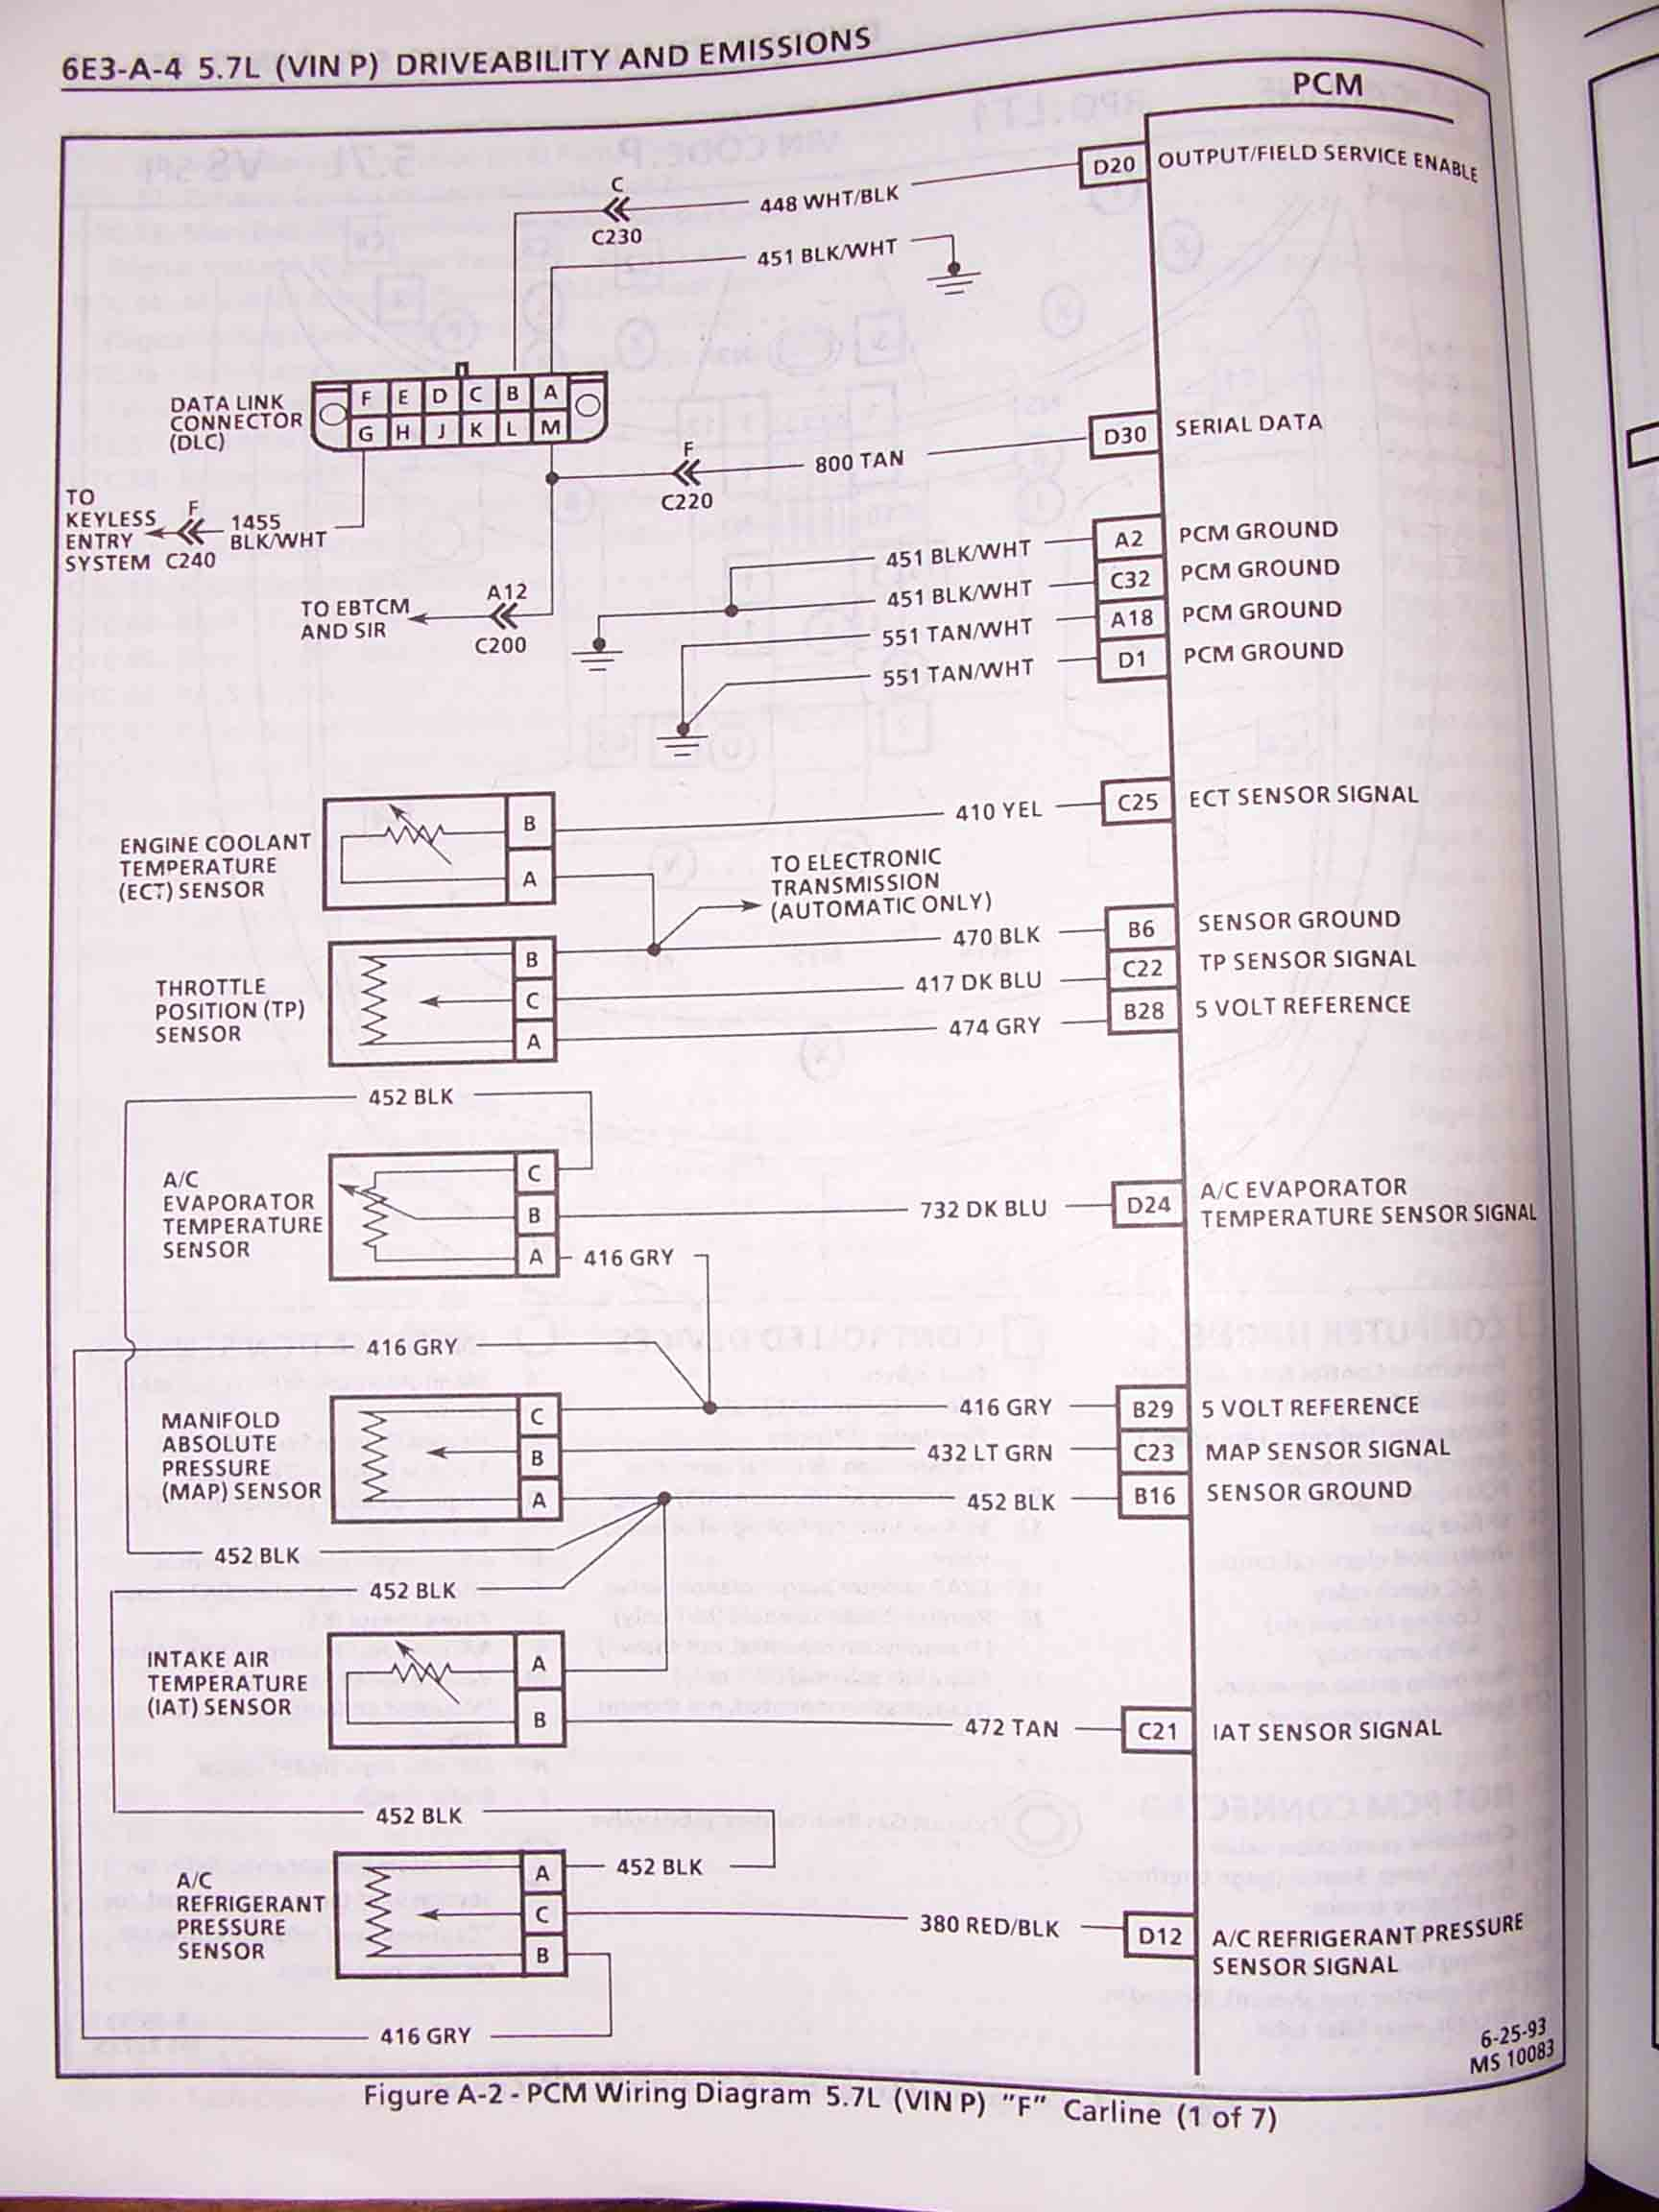 1995 F Body Wire Harness Schematics Lt1 24x Wiring These Are Specifically For 1994 Camaro Firebird 57l However Will Be Very Similar To